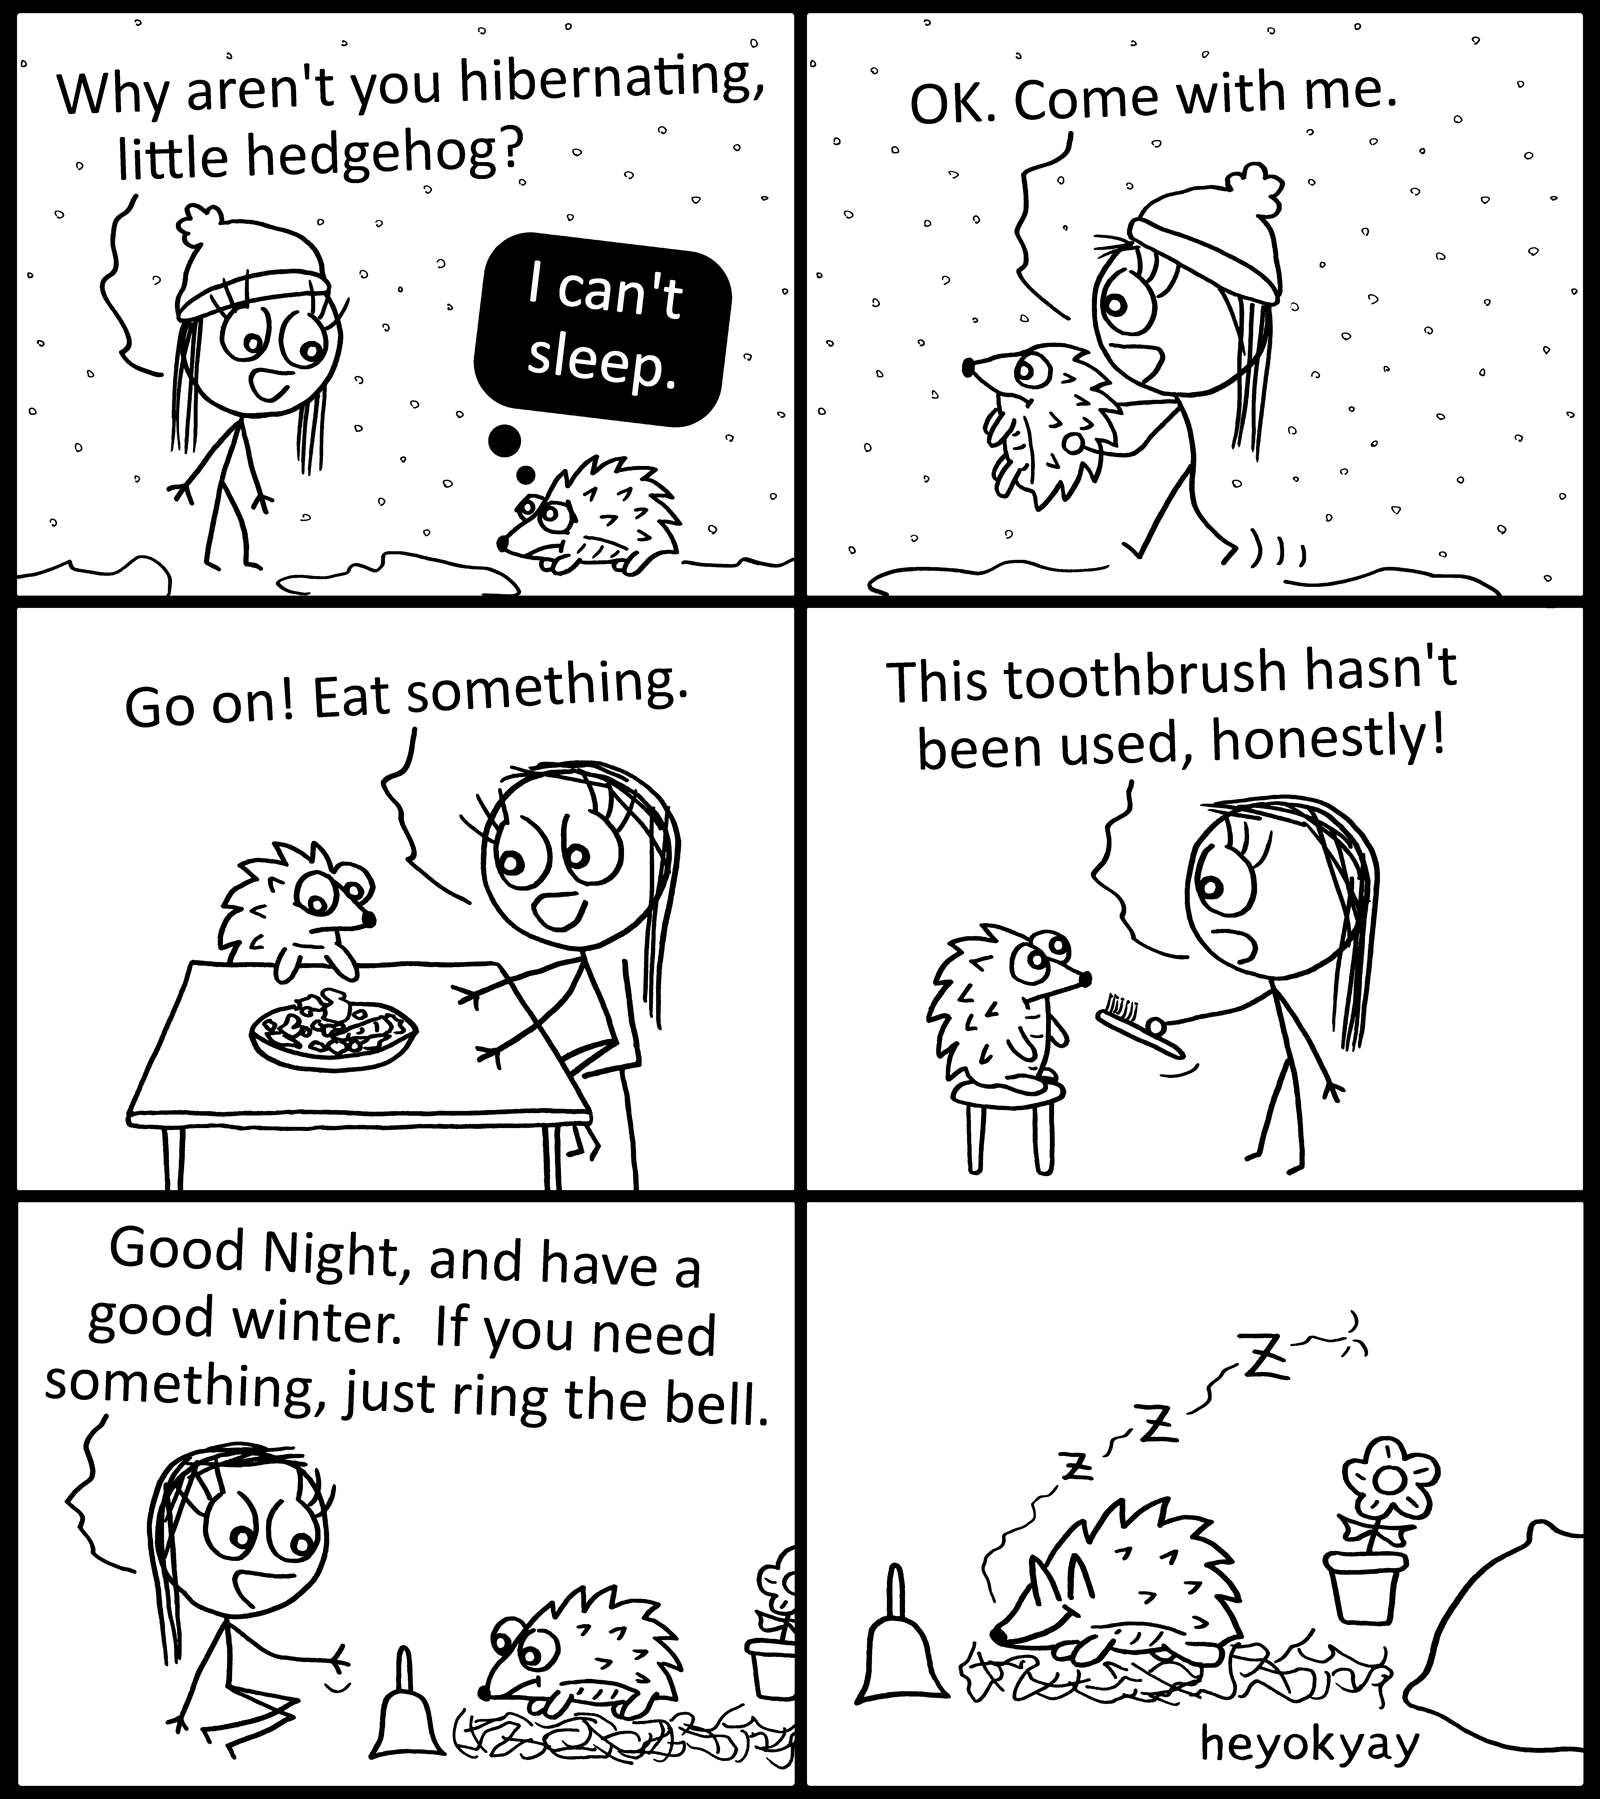 Hibernation heyokyay comic